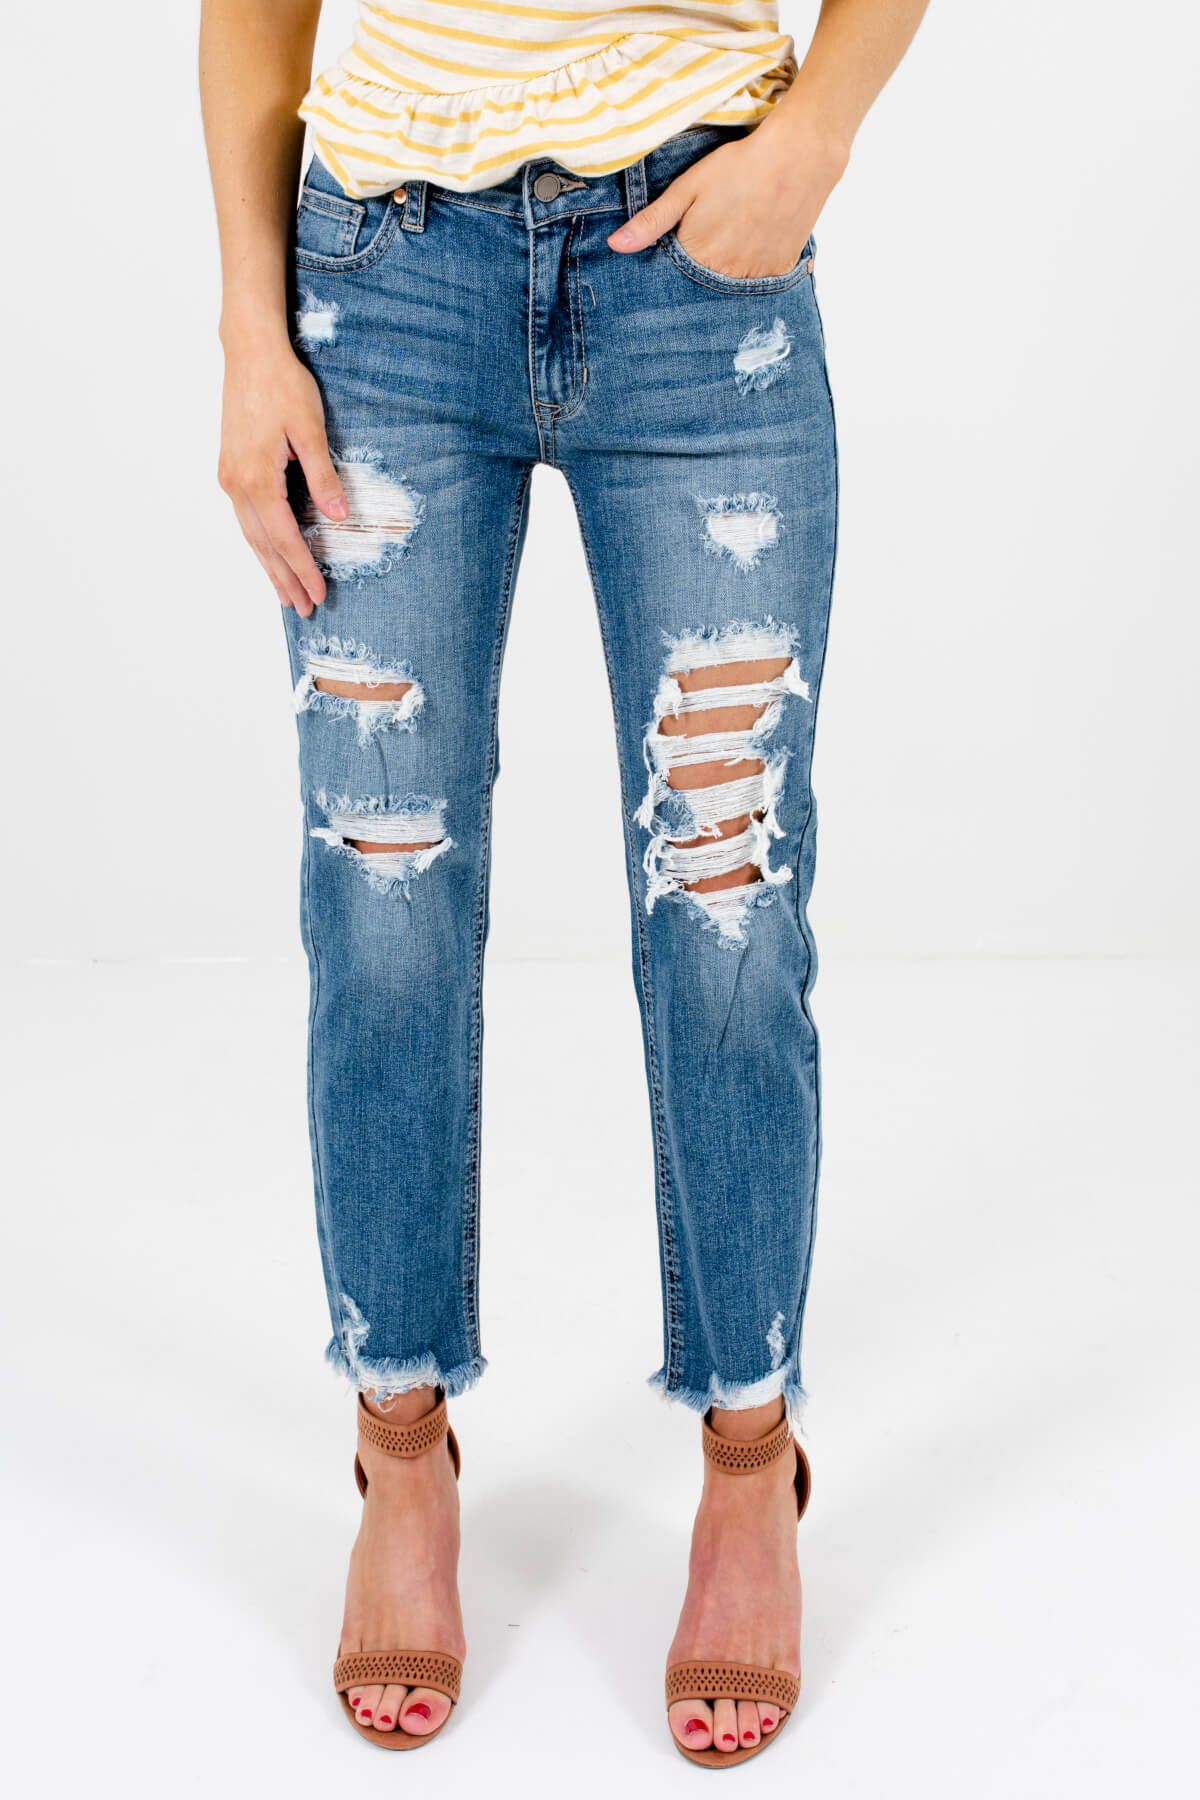 Medium Wash Denim Blue Distressed Boutique Jeans for Women